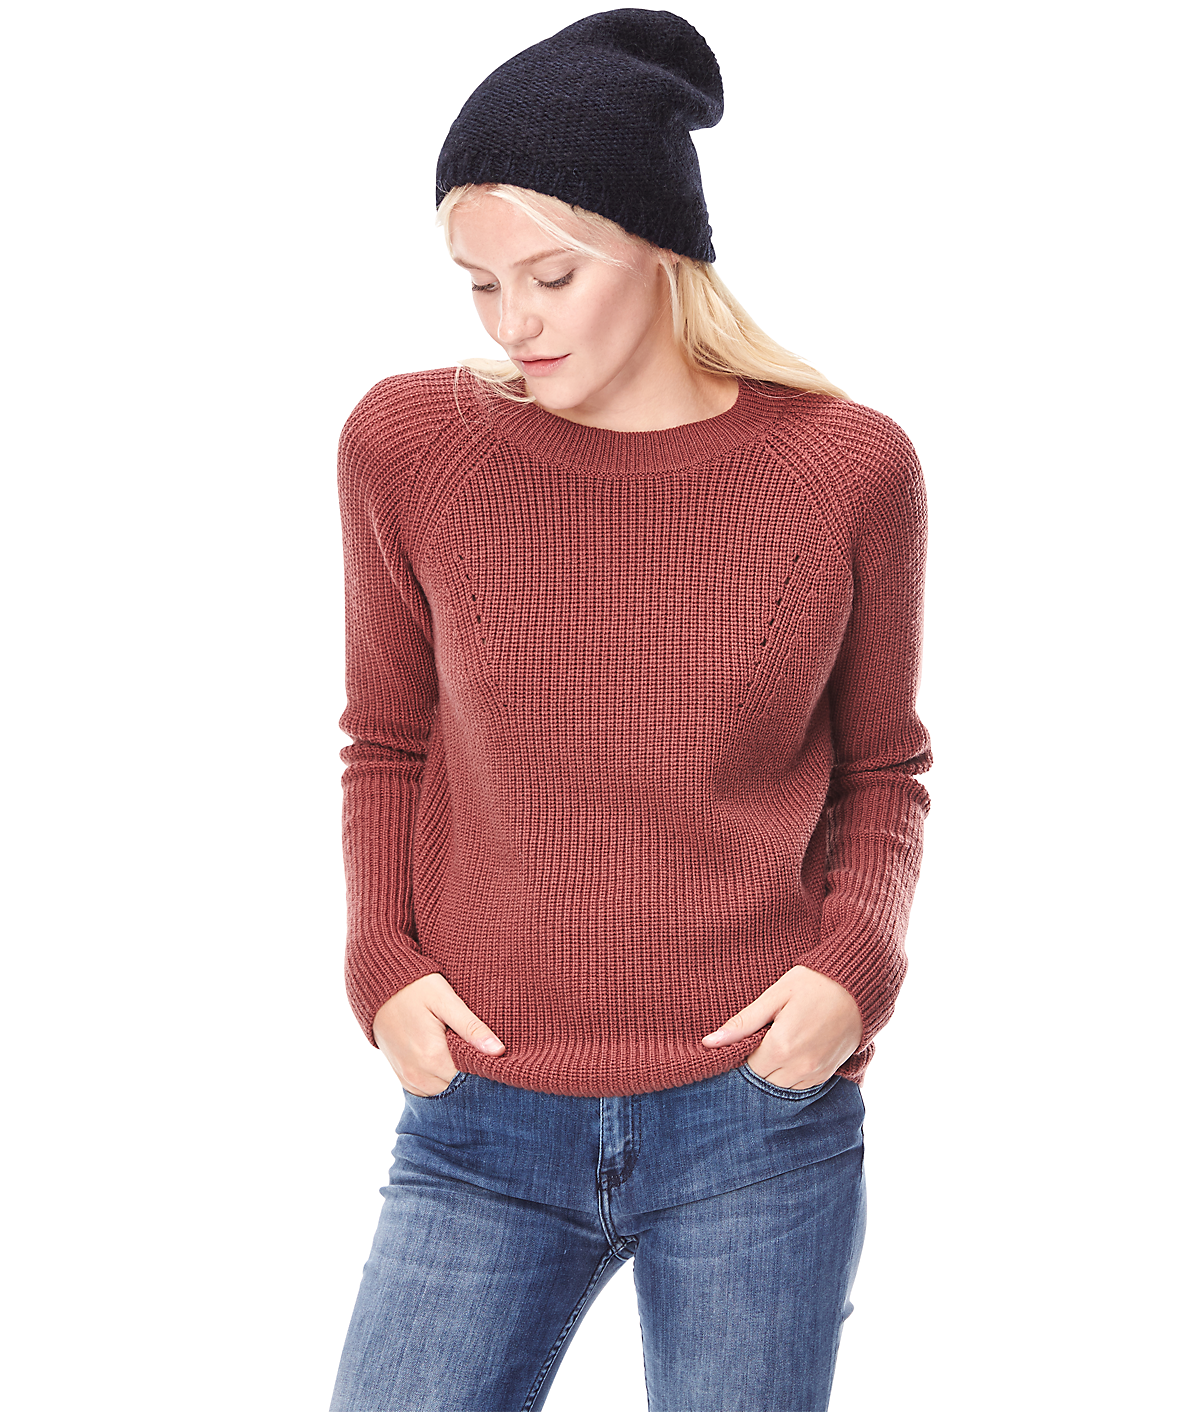 Knit hat W2165111 from liebeskind